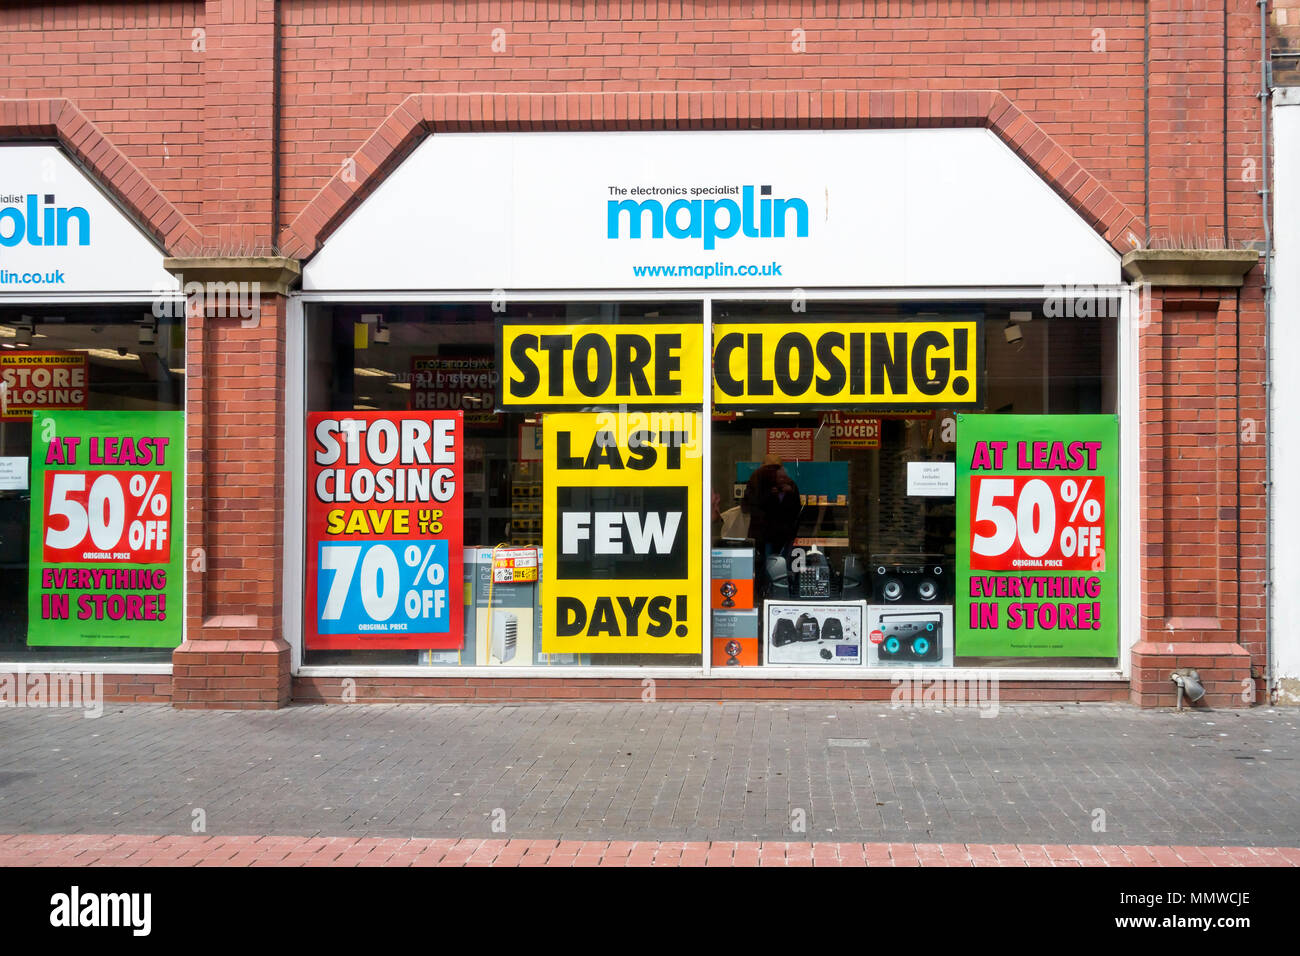 Maplin electronic equipment sale shop front with closure sale notices due to the company going into administration May 2018 - Stock Image